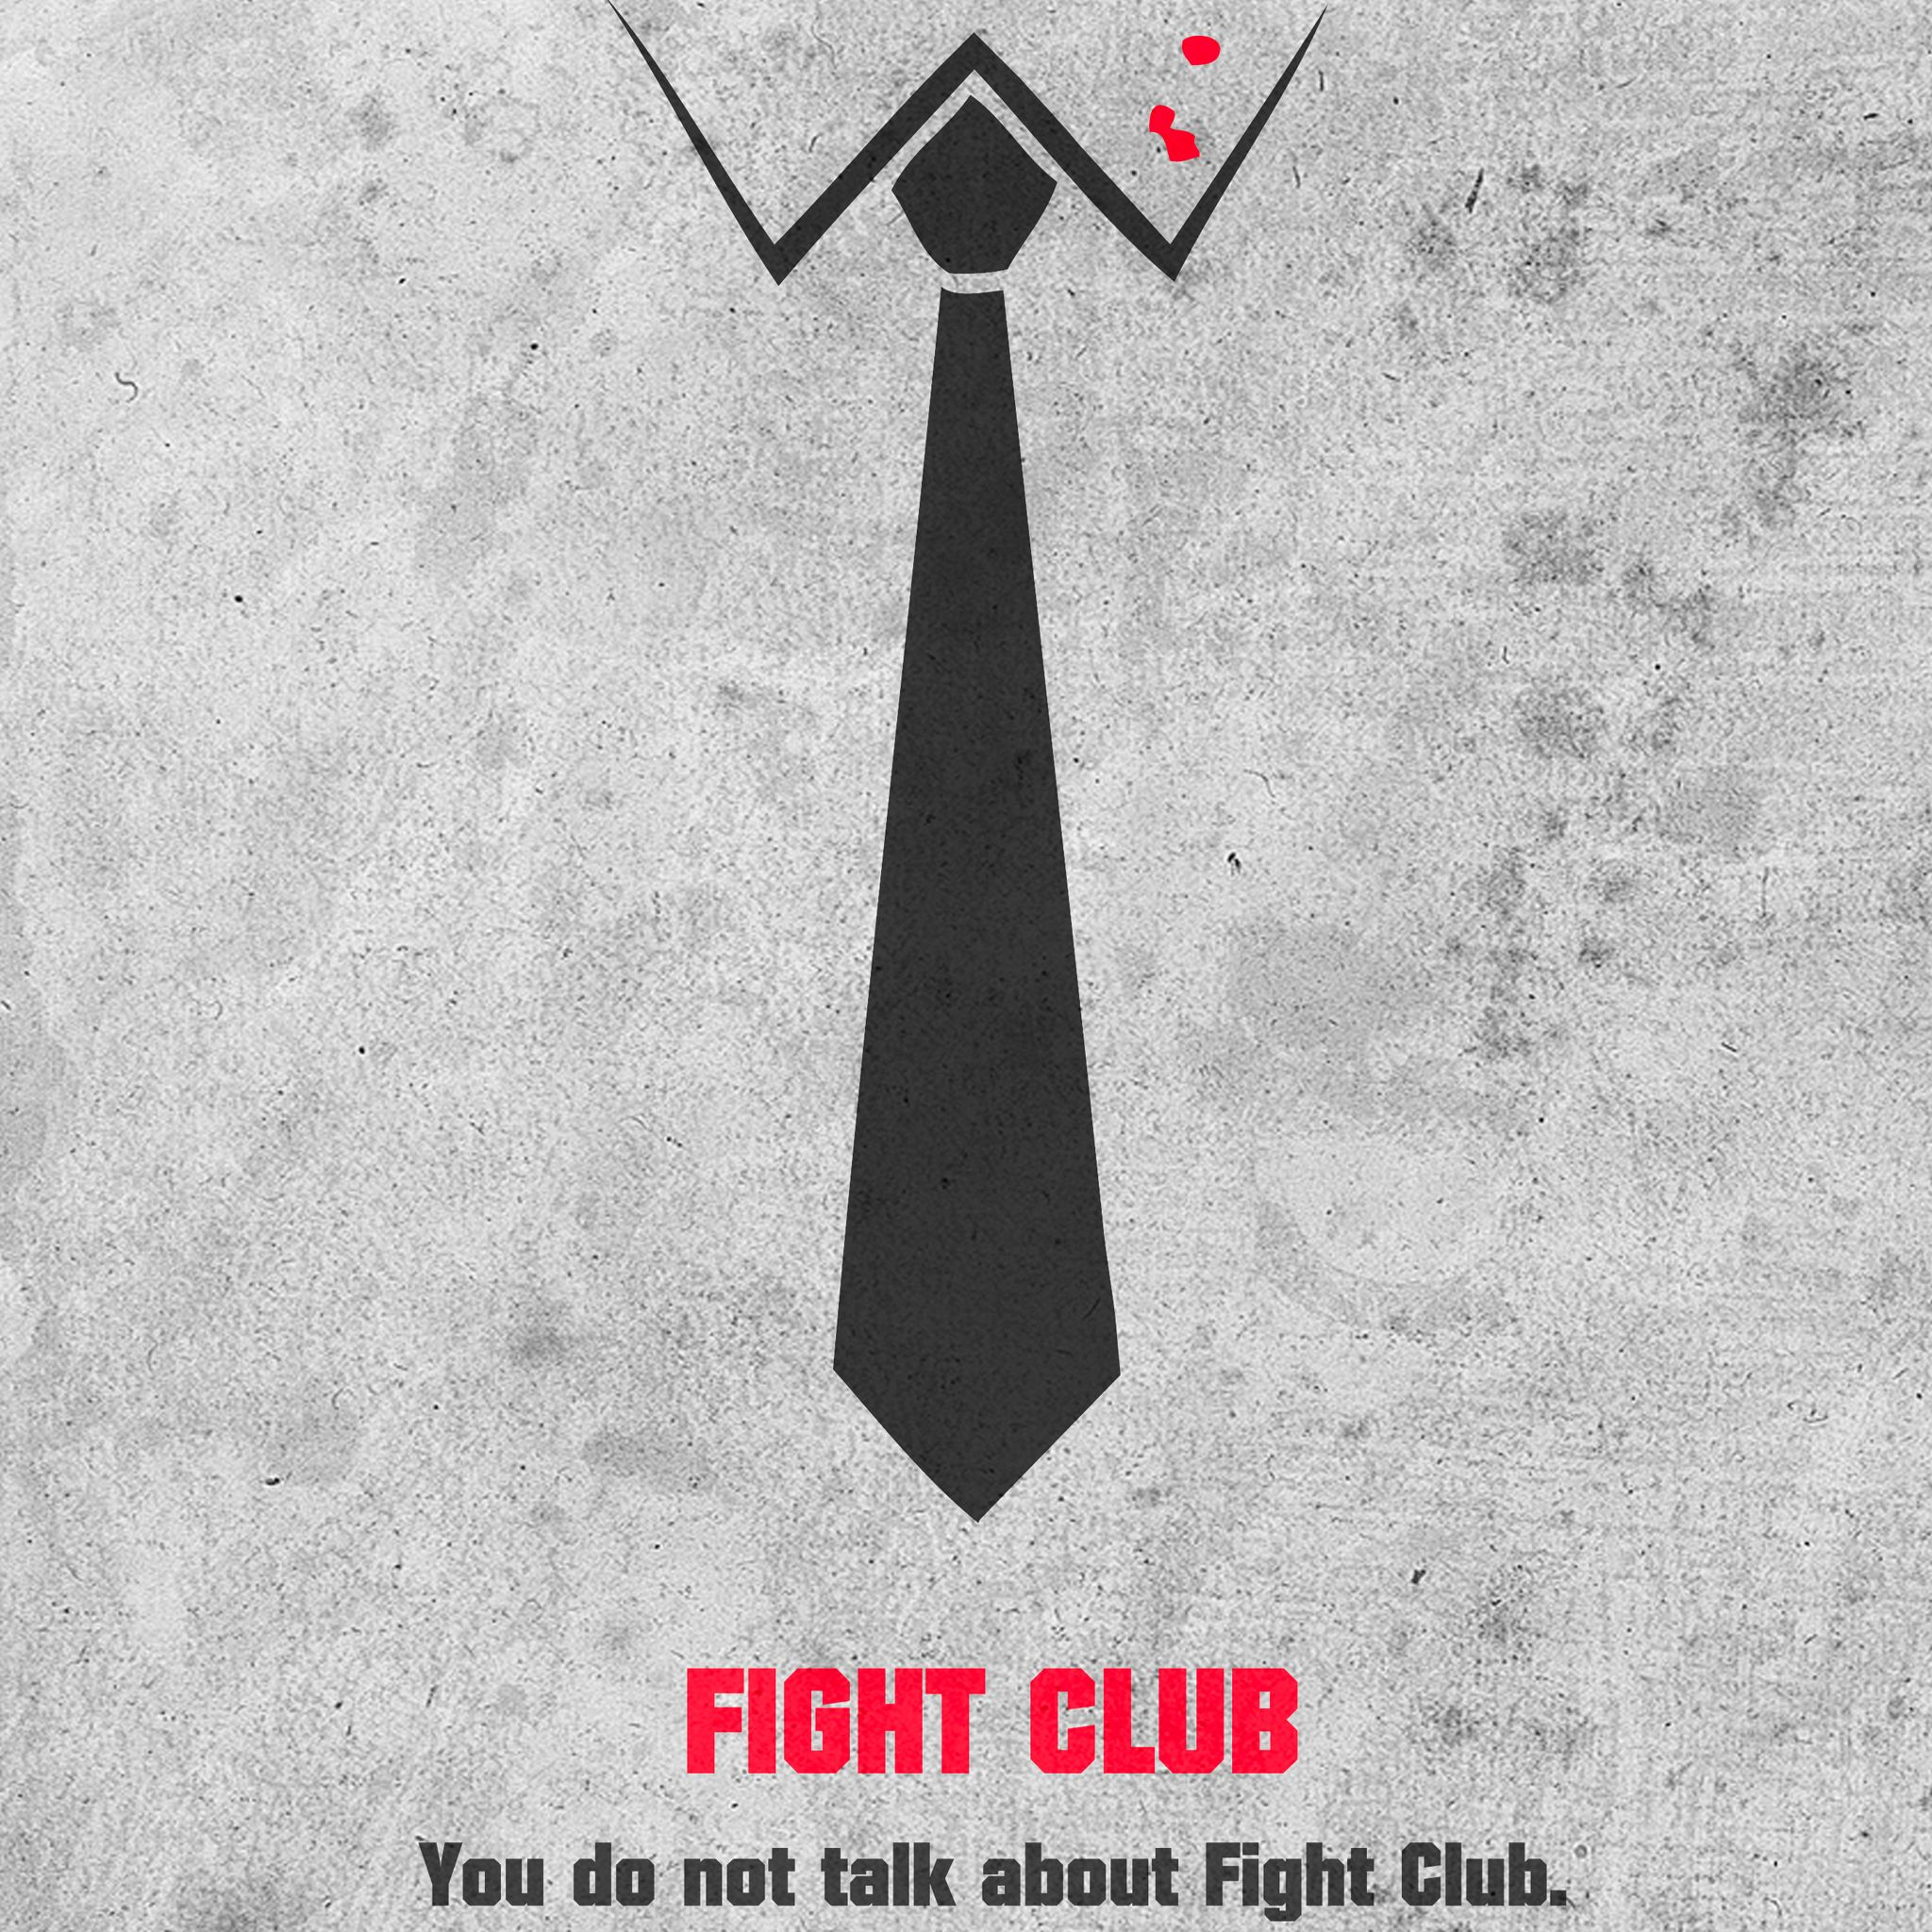 fightclub fanart fanart ipad fans and art fightclub fanart